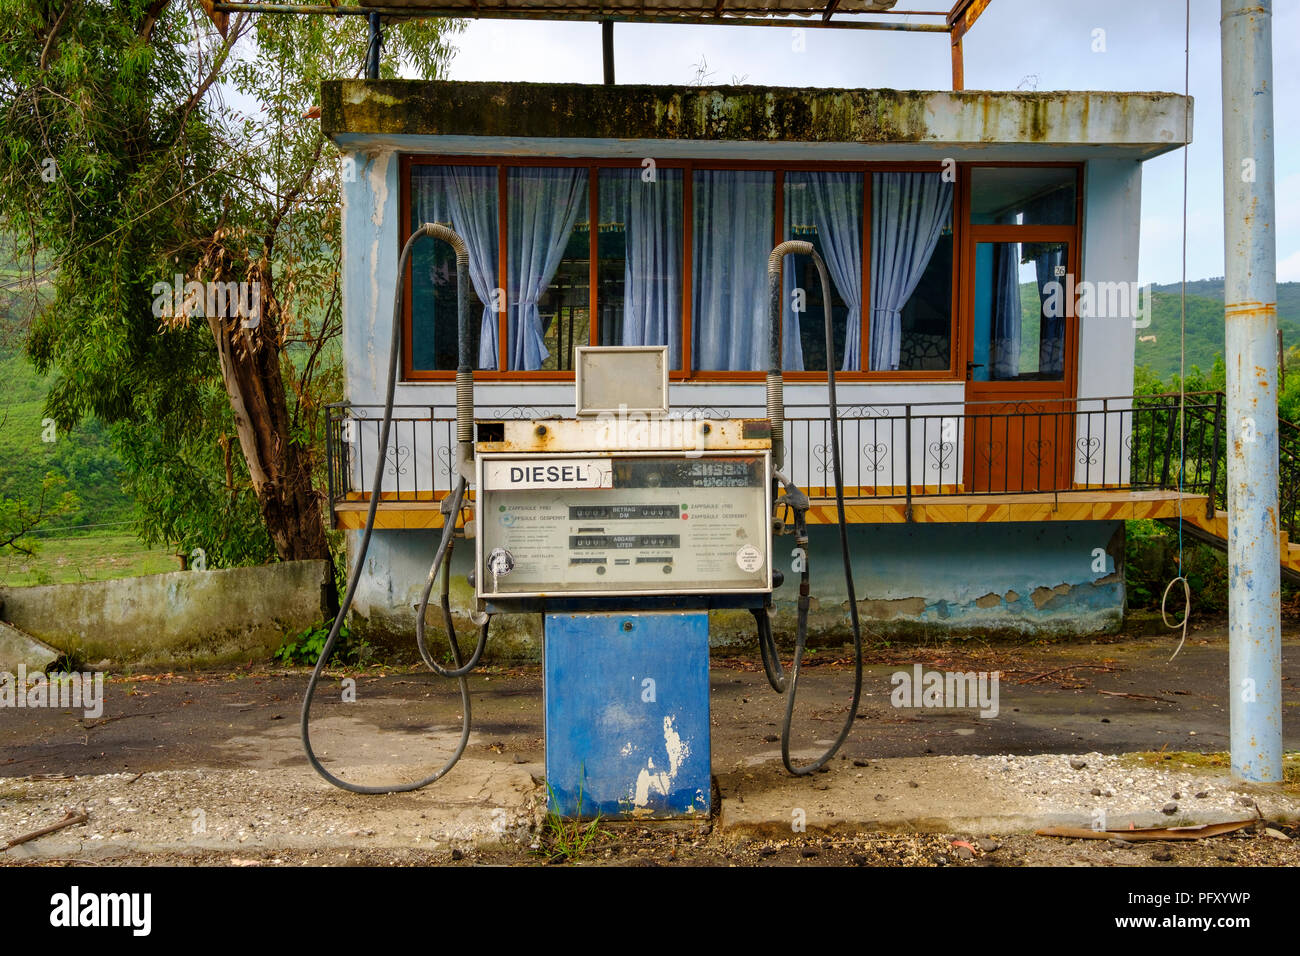 German Diesel petrol pump, old petrol station near Ballsh, Qarier Fier, Albania - Stock Image